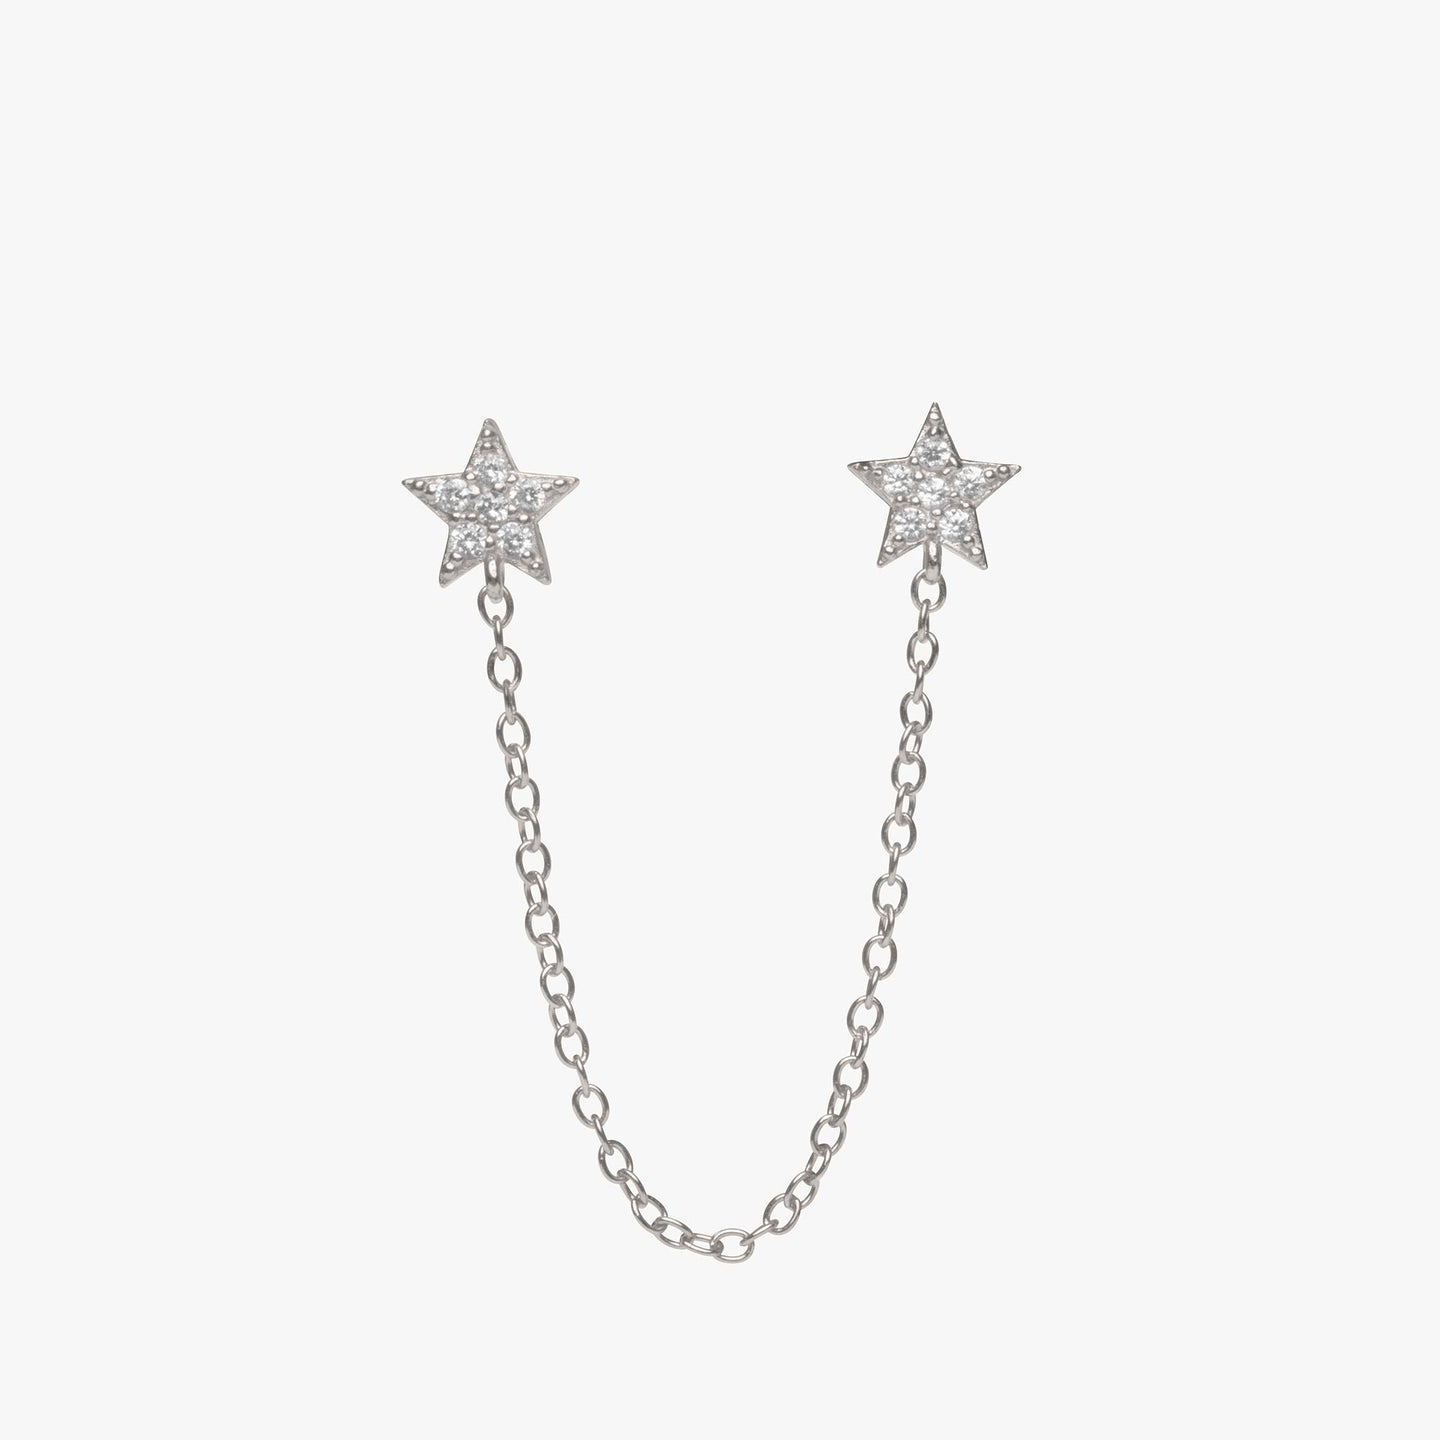 Two separate pavé star posts connected by a silver chain. color:silver